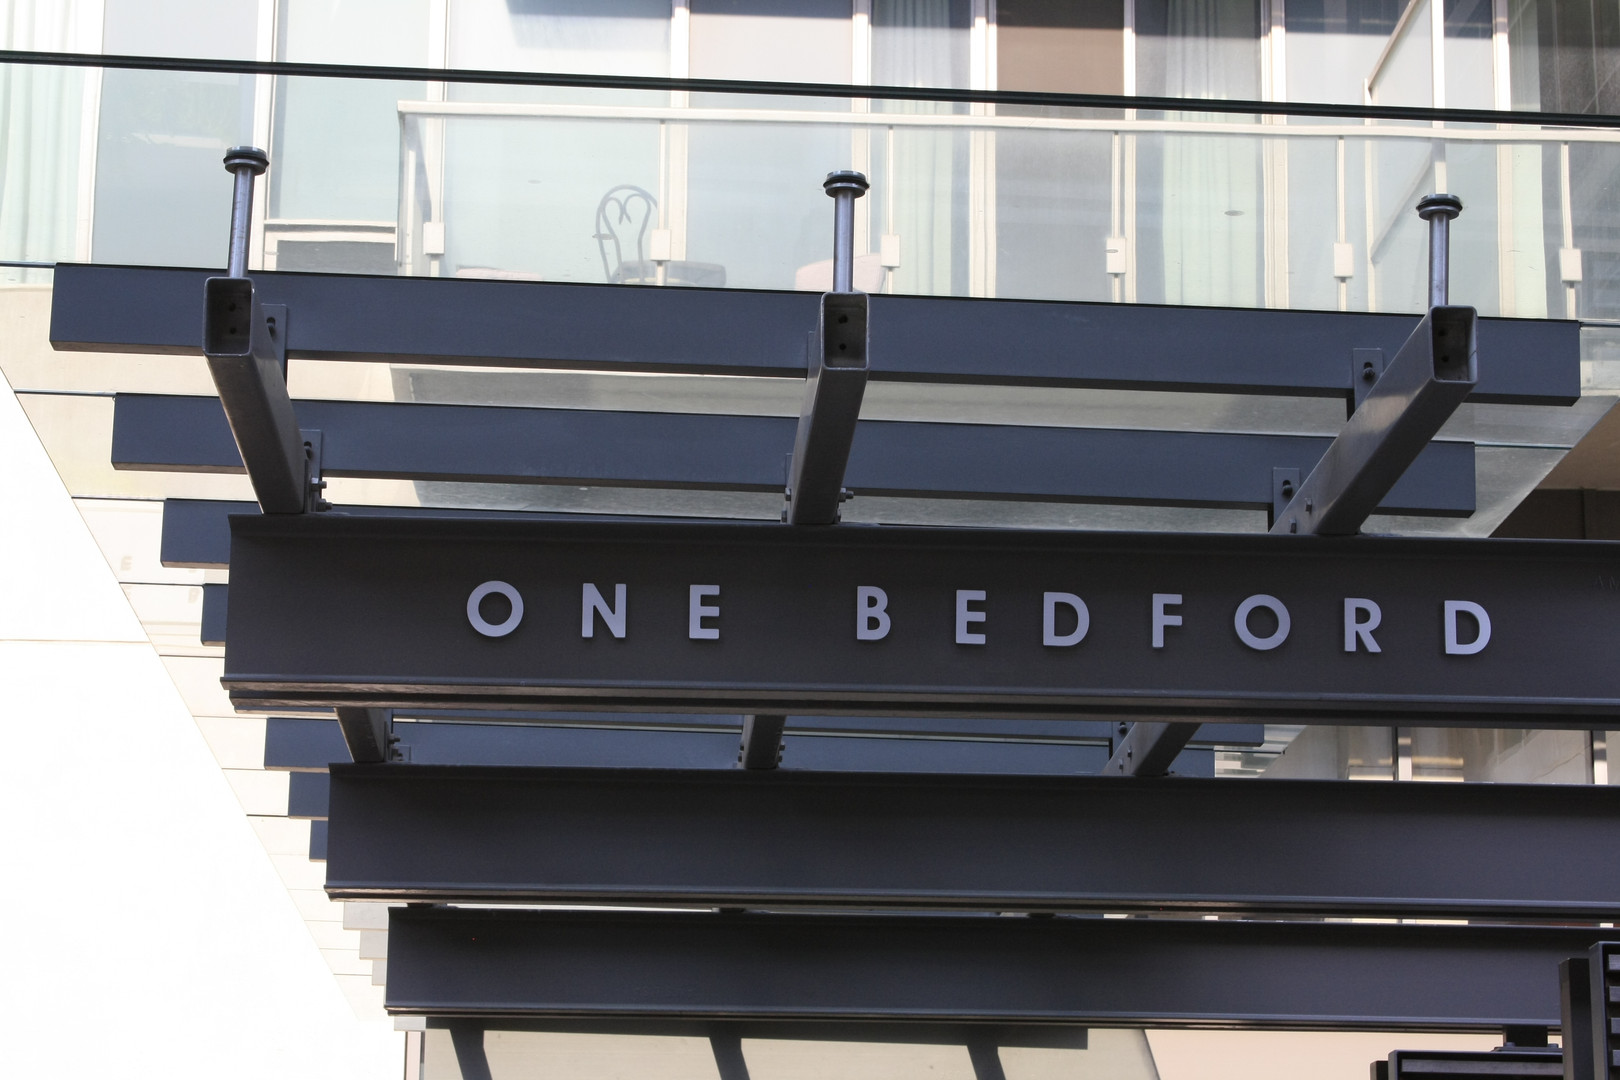 One Bedford | Toronto | Street Sign